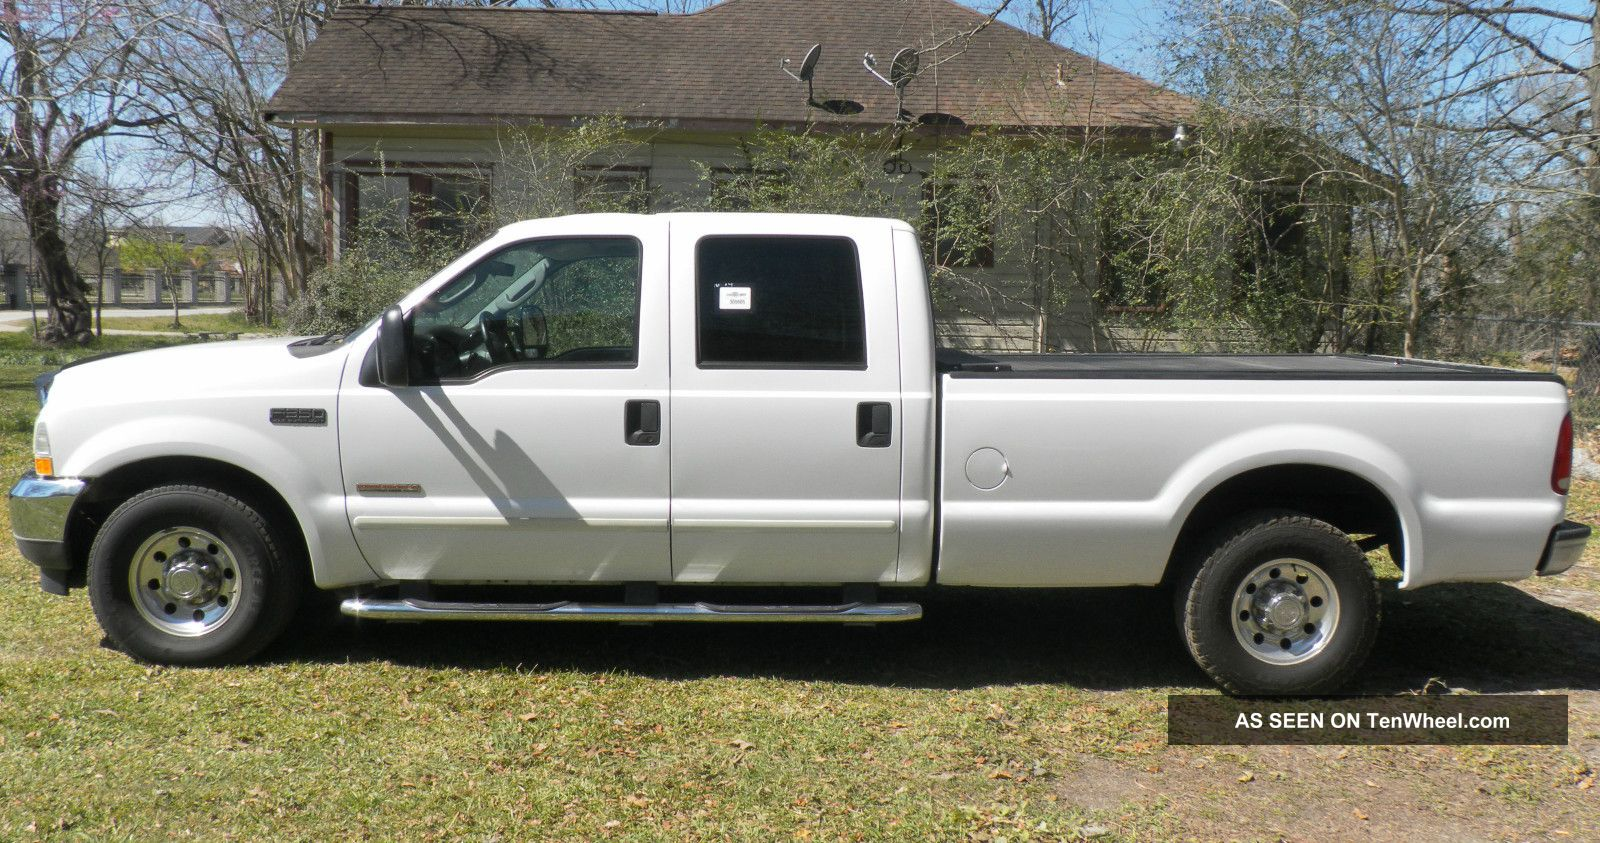 2003 ford f 350 duty xlt crew cab turbo deisel 6 0l. Black Bedroom Furniture Sets. Home Design Ideas